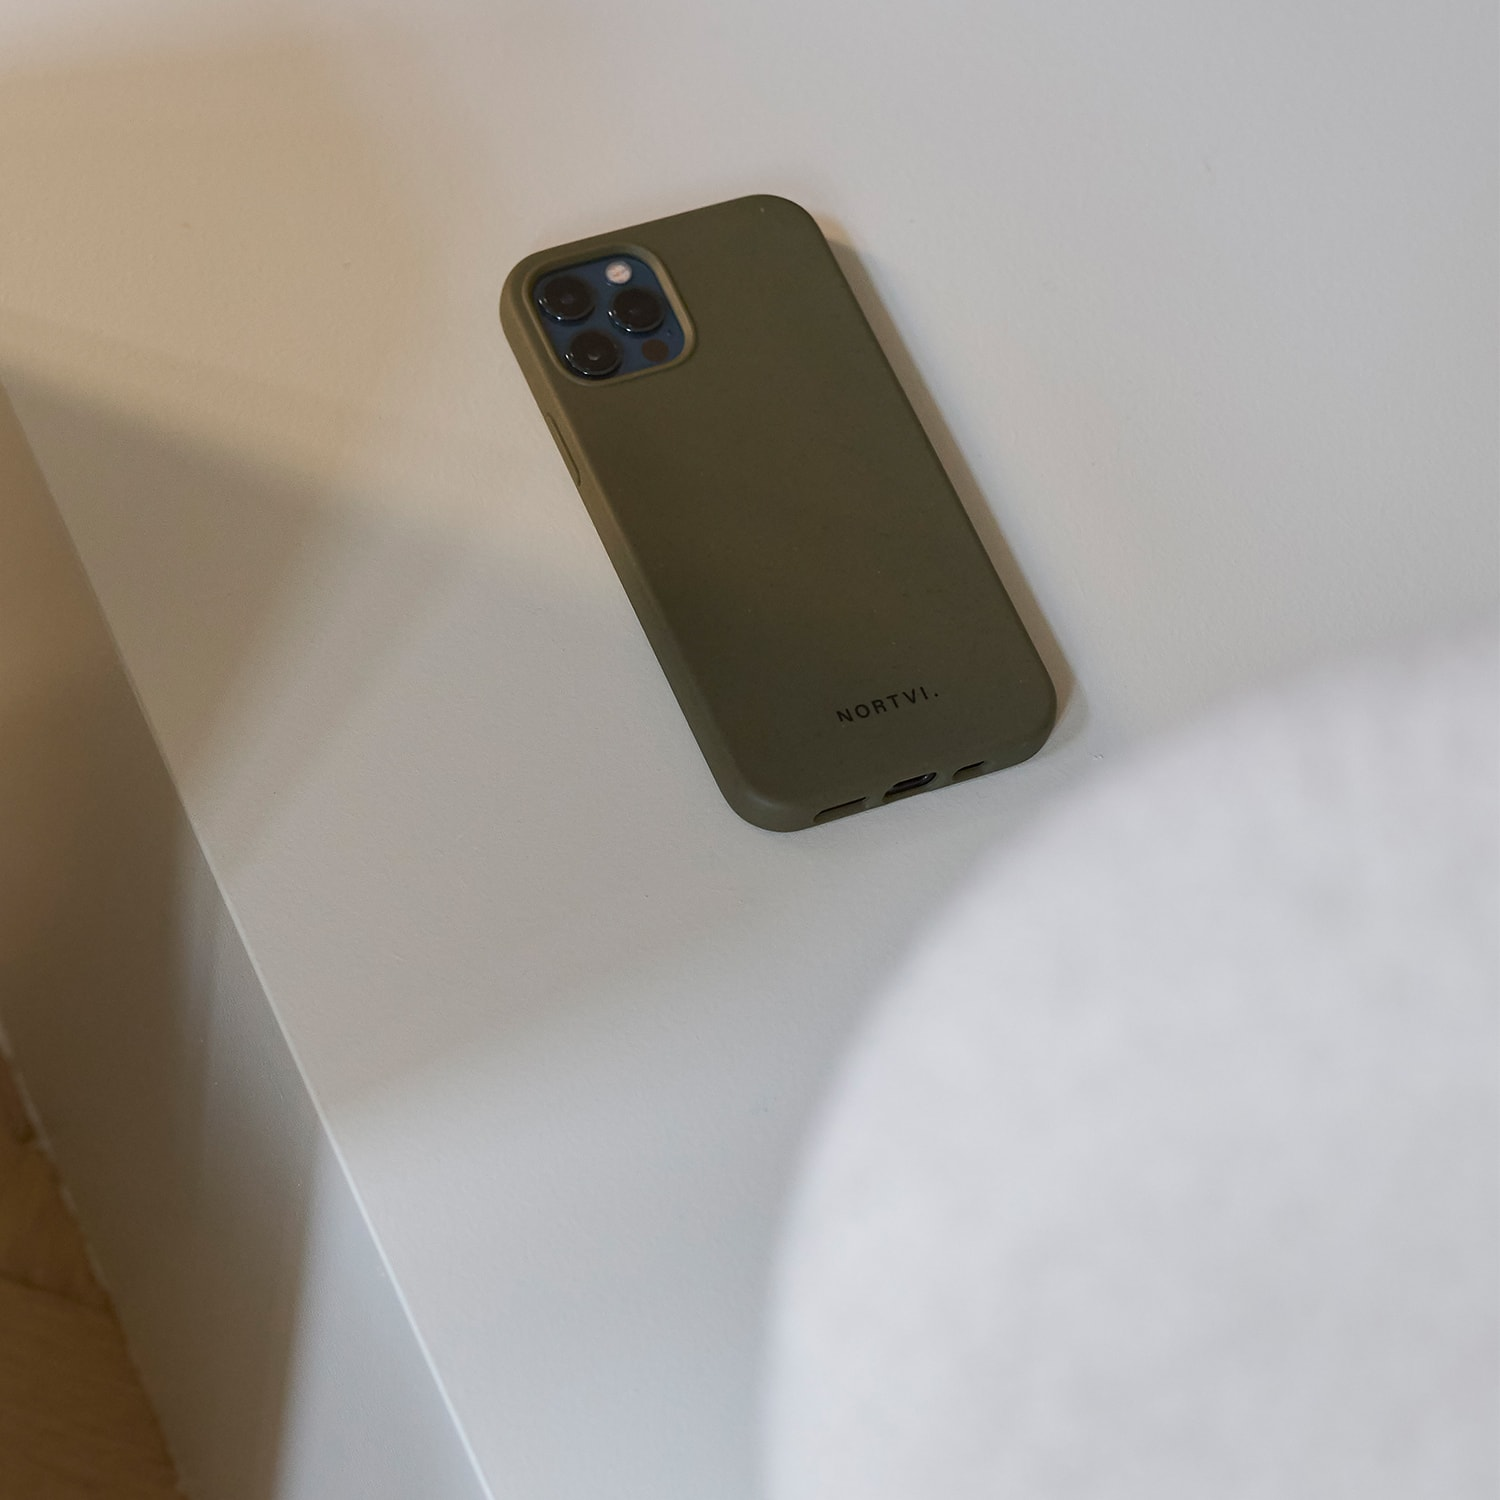 NORTVI green phone case for iPhone XR